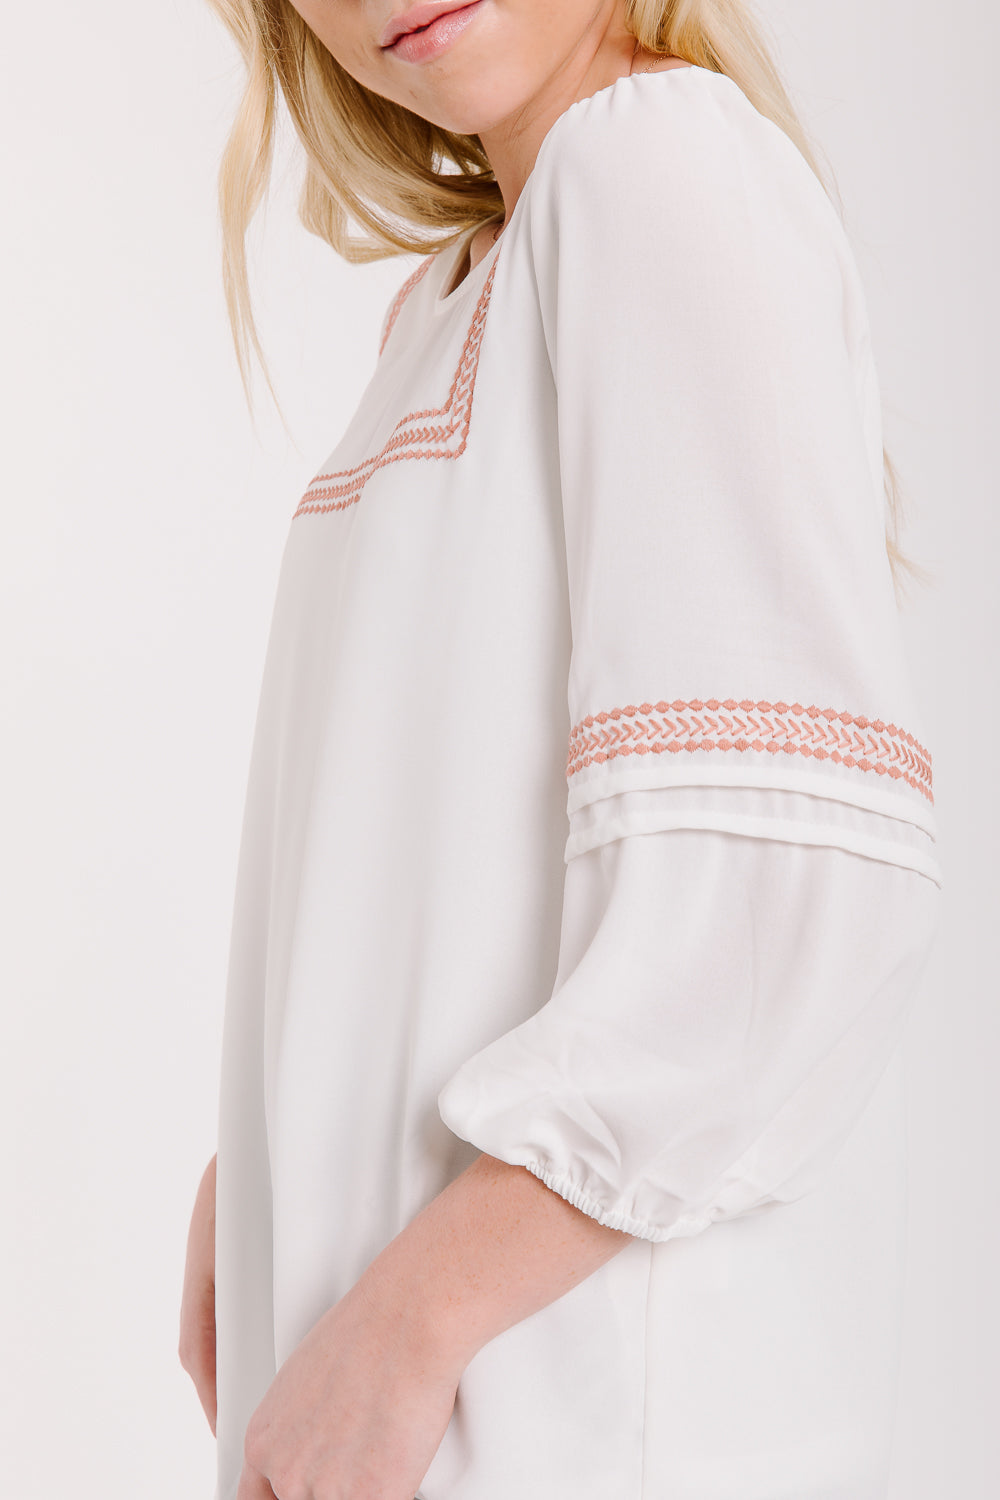 The Eddy Embroidered Bib Blouse in Ivory